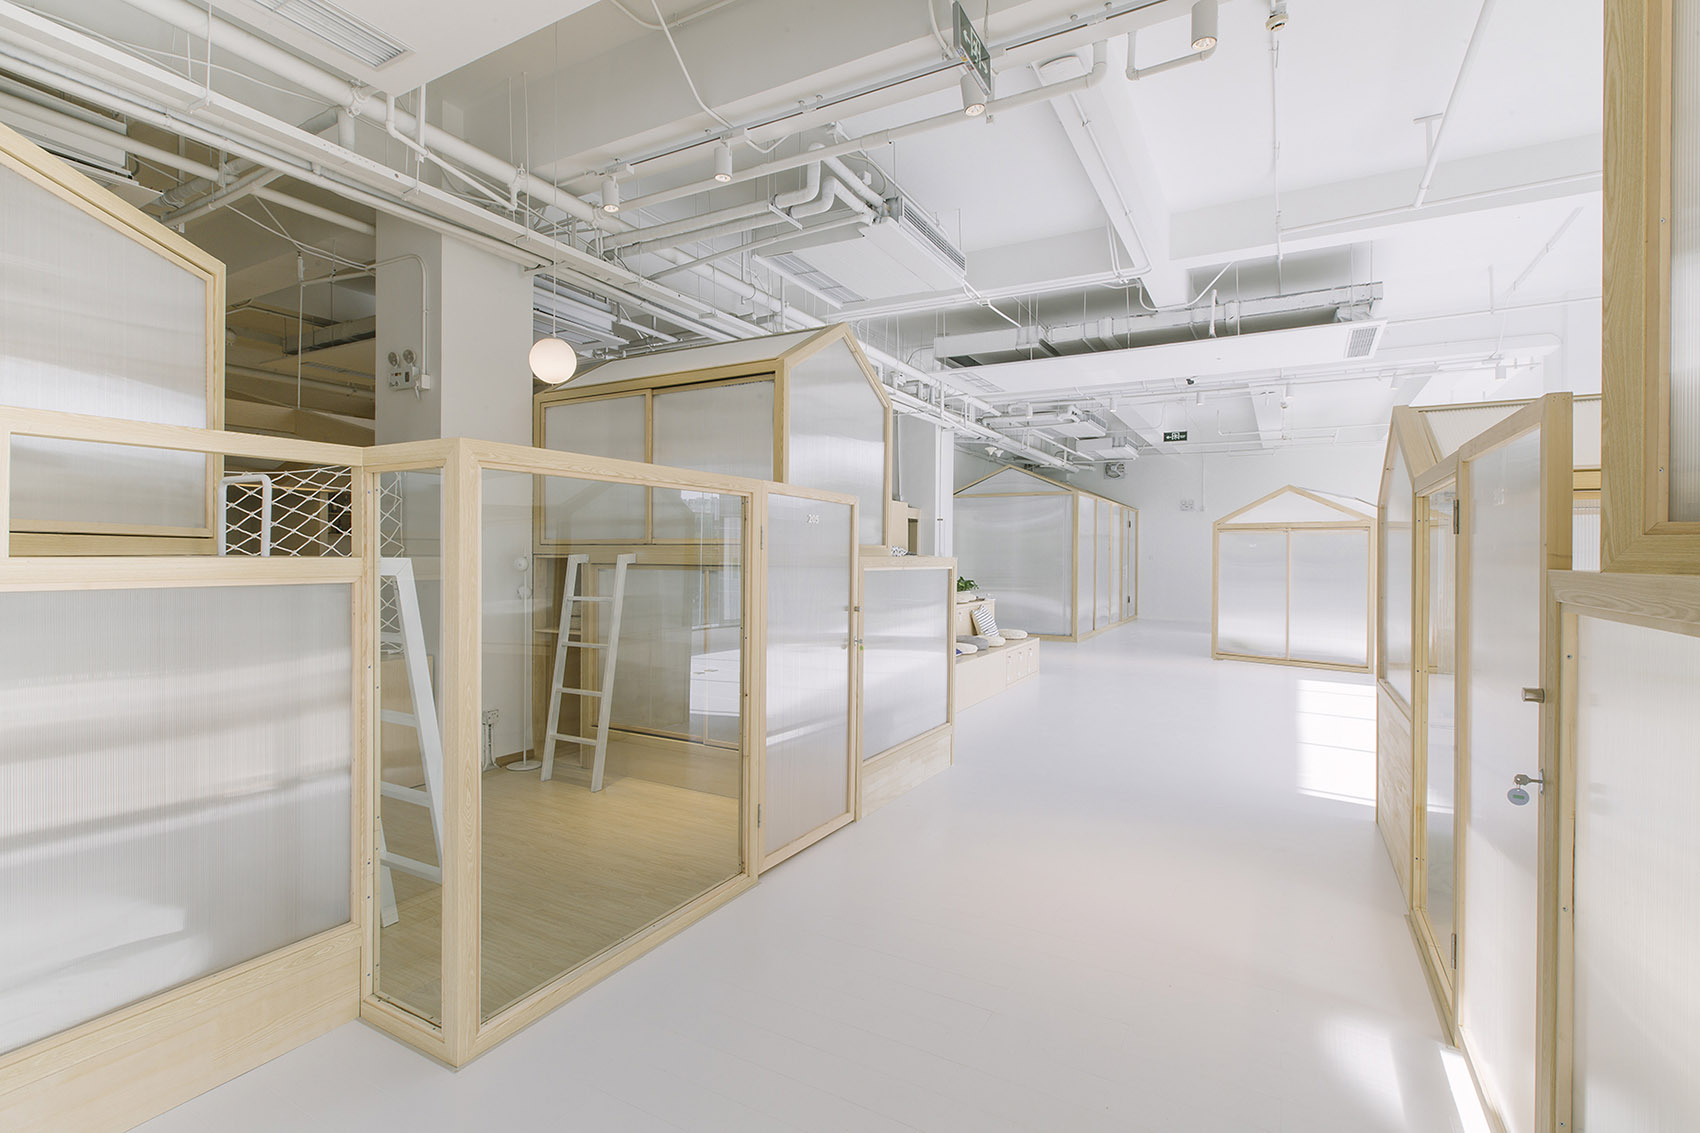 9-Together-Hostel-indoor-camping-space-for-youth-By-Jacobsen-Arquitetura